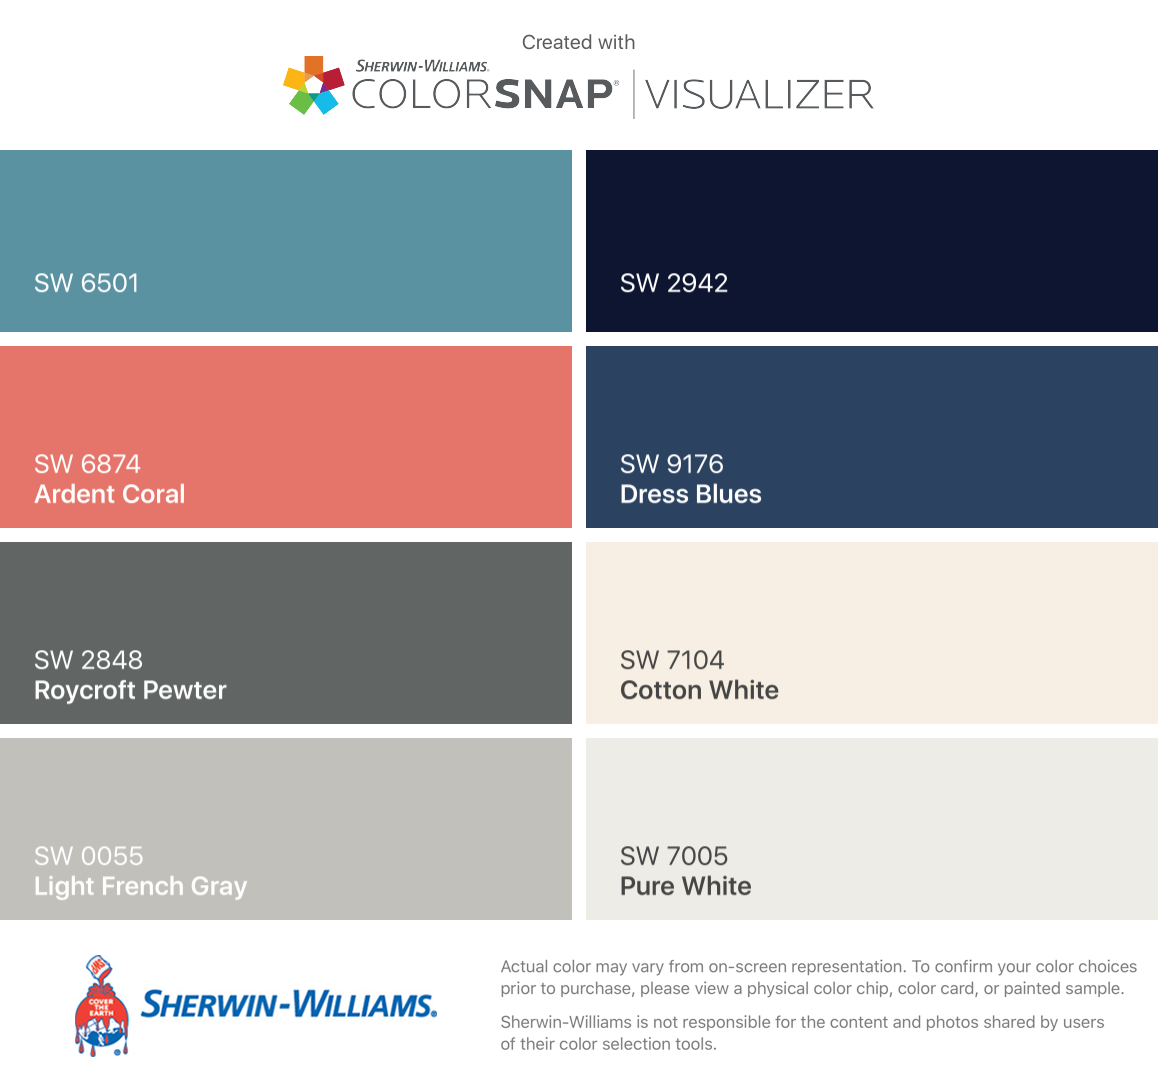 I Found These Colors With Colorsnap Visualizer For Iphone By Sherwin Williams Manitou Blue Sw 6501 Ardent C Sherwin Williams Sherwin Paint Colors For Home [ 1088 x 1158 Pixel ]